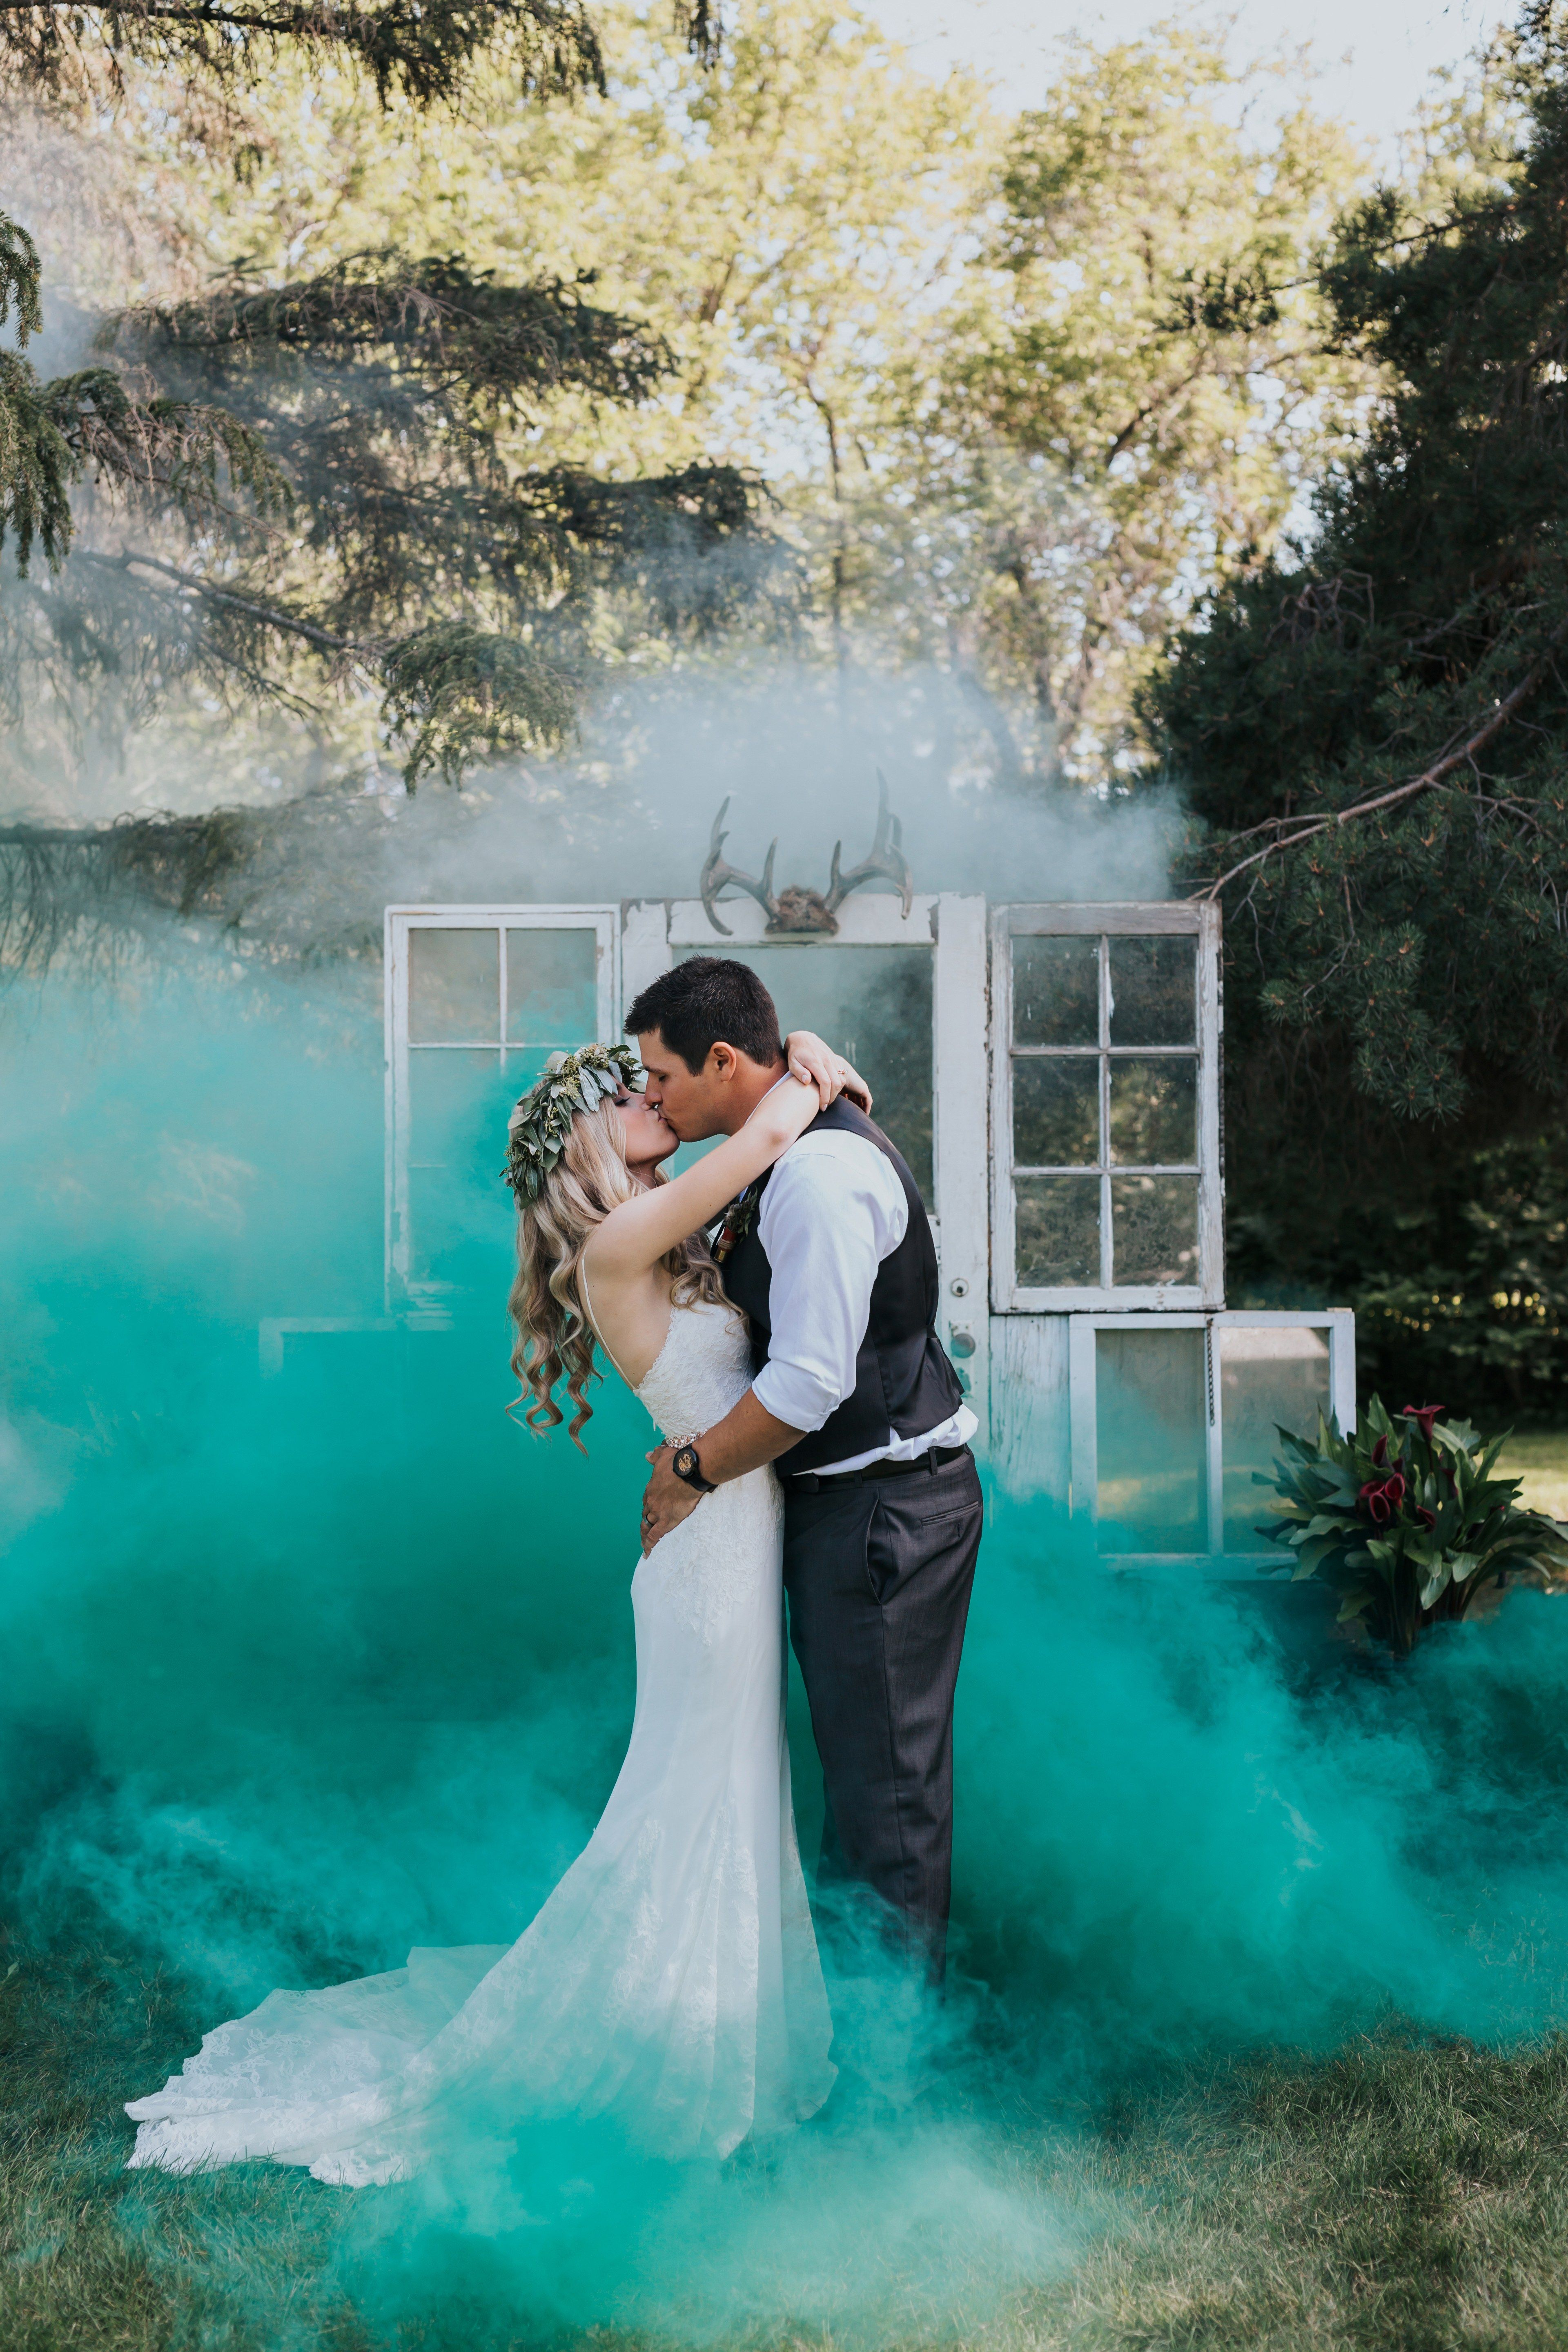 42 Wonderfully Artistic Wedding Ideas Youll Want To Copy ASAP